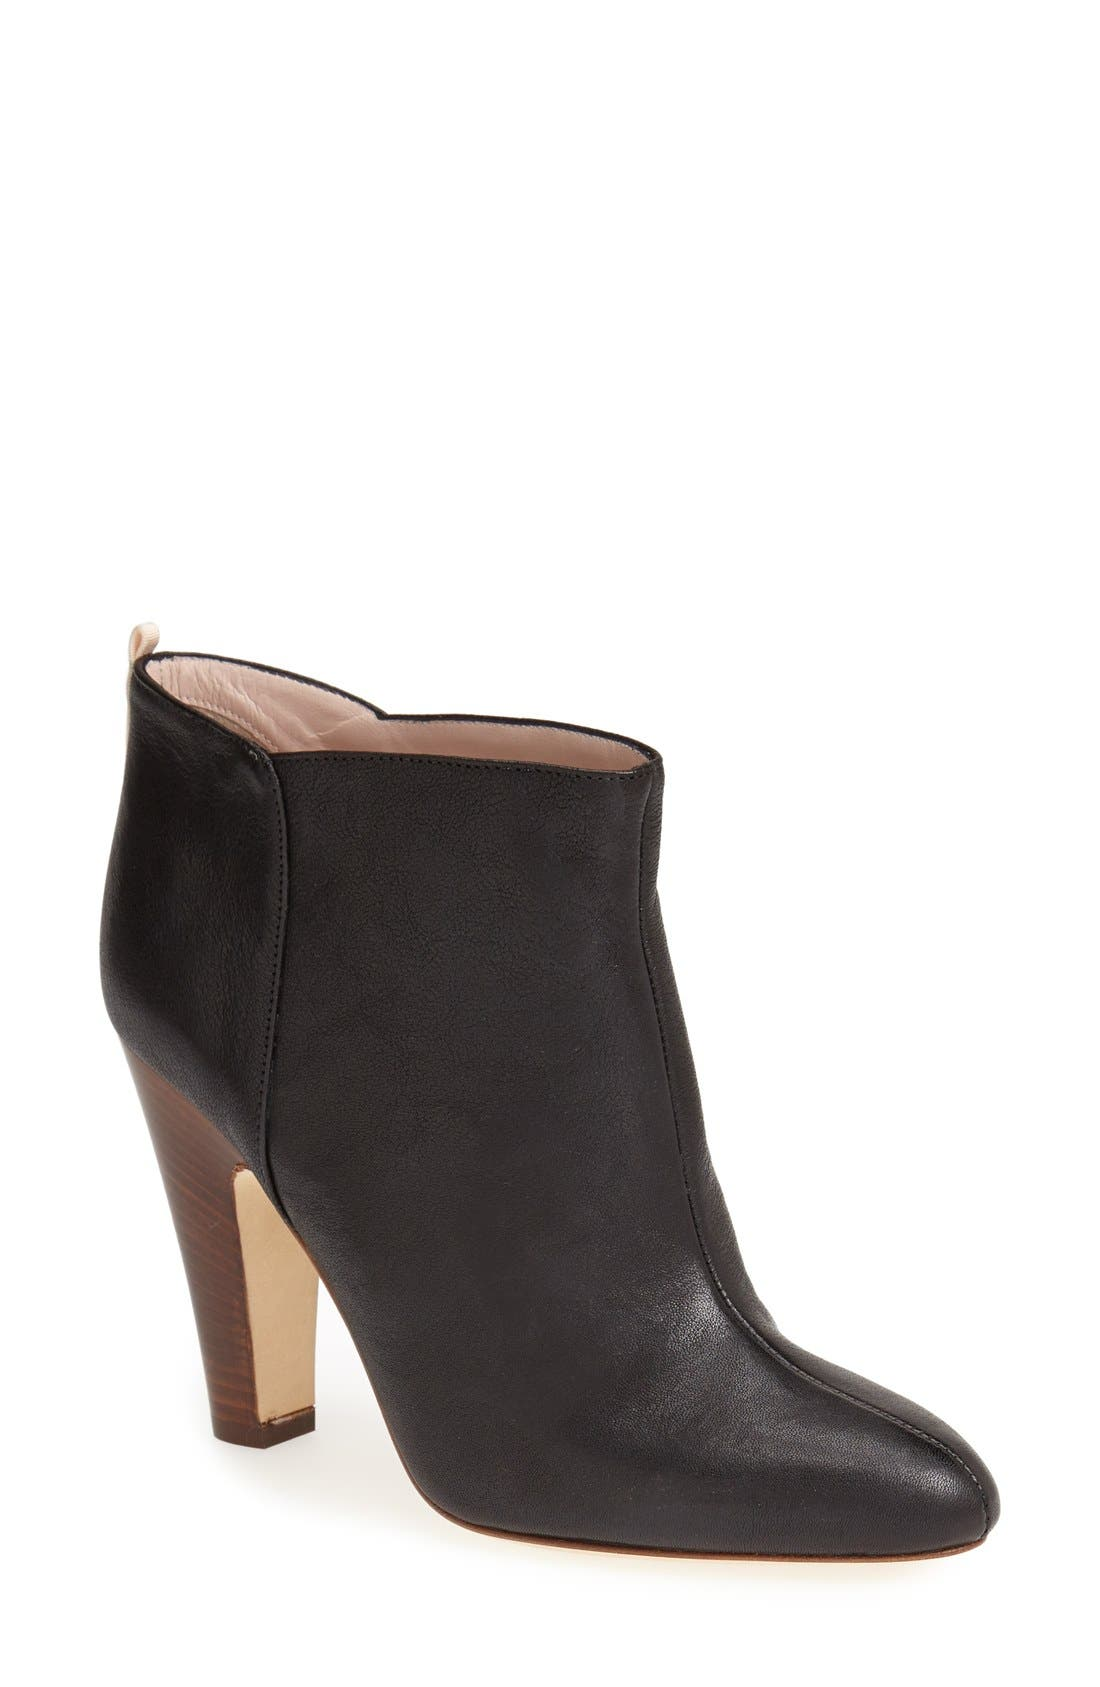 Alternate Image 1 Selected - SJP 'Serge' Leather Bootie (Women)